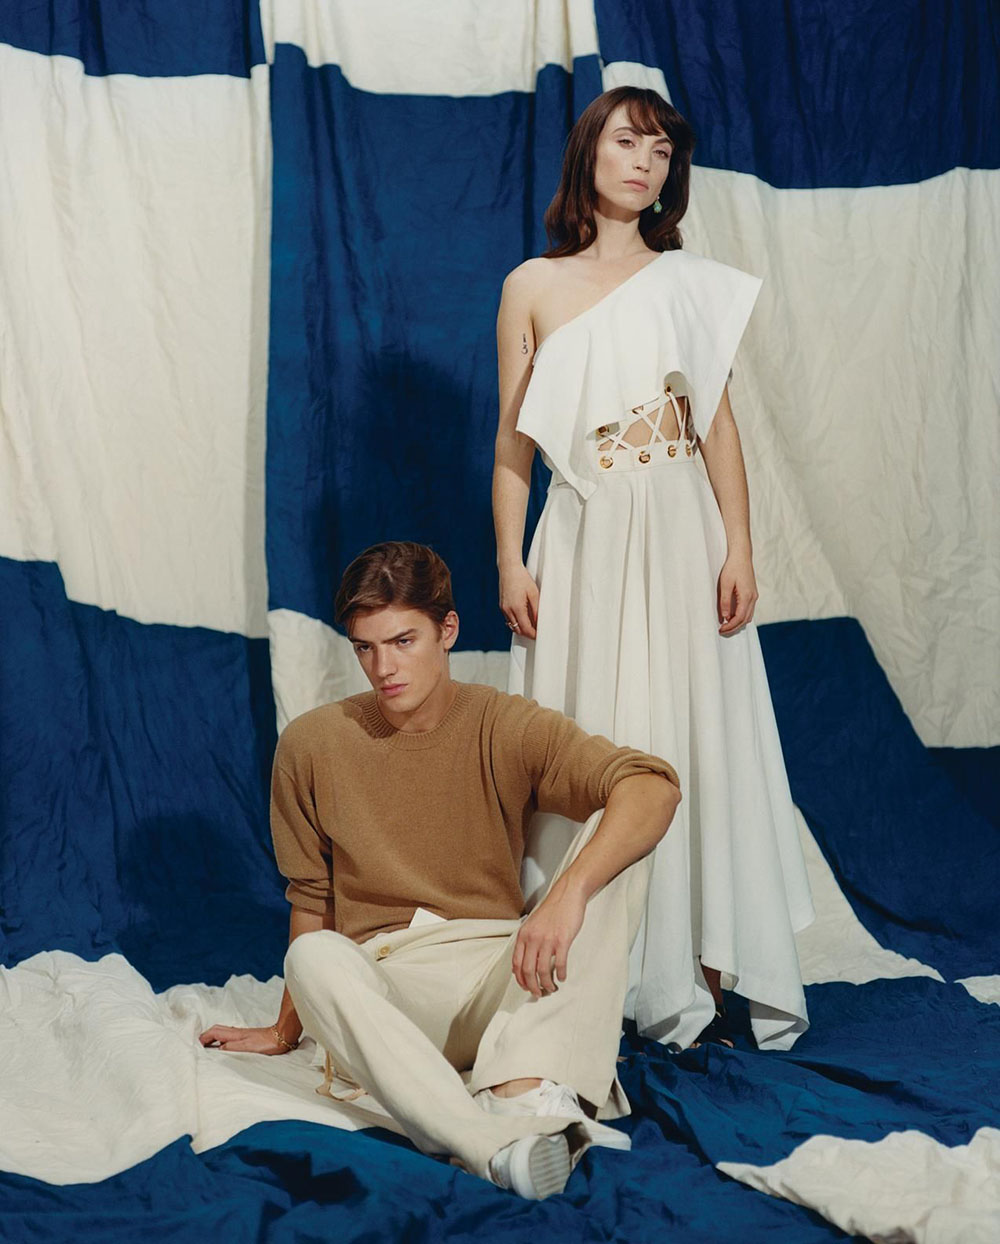 Katerina Tannenbaum and Theo Ford by Dham Srifuengfung for WSJ. Magazine May 2020